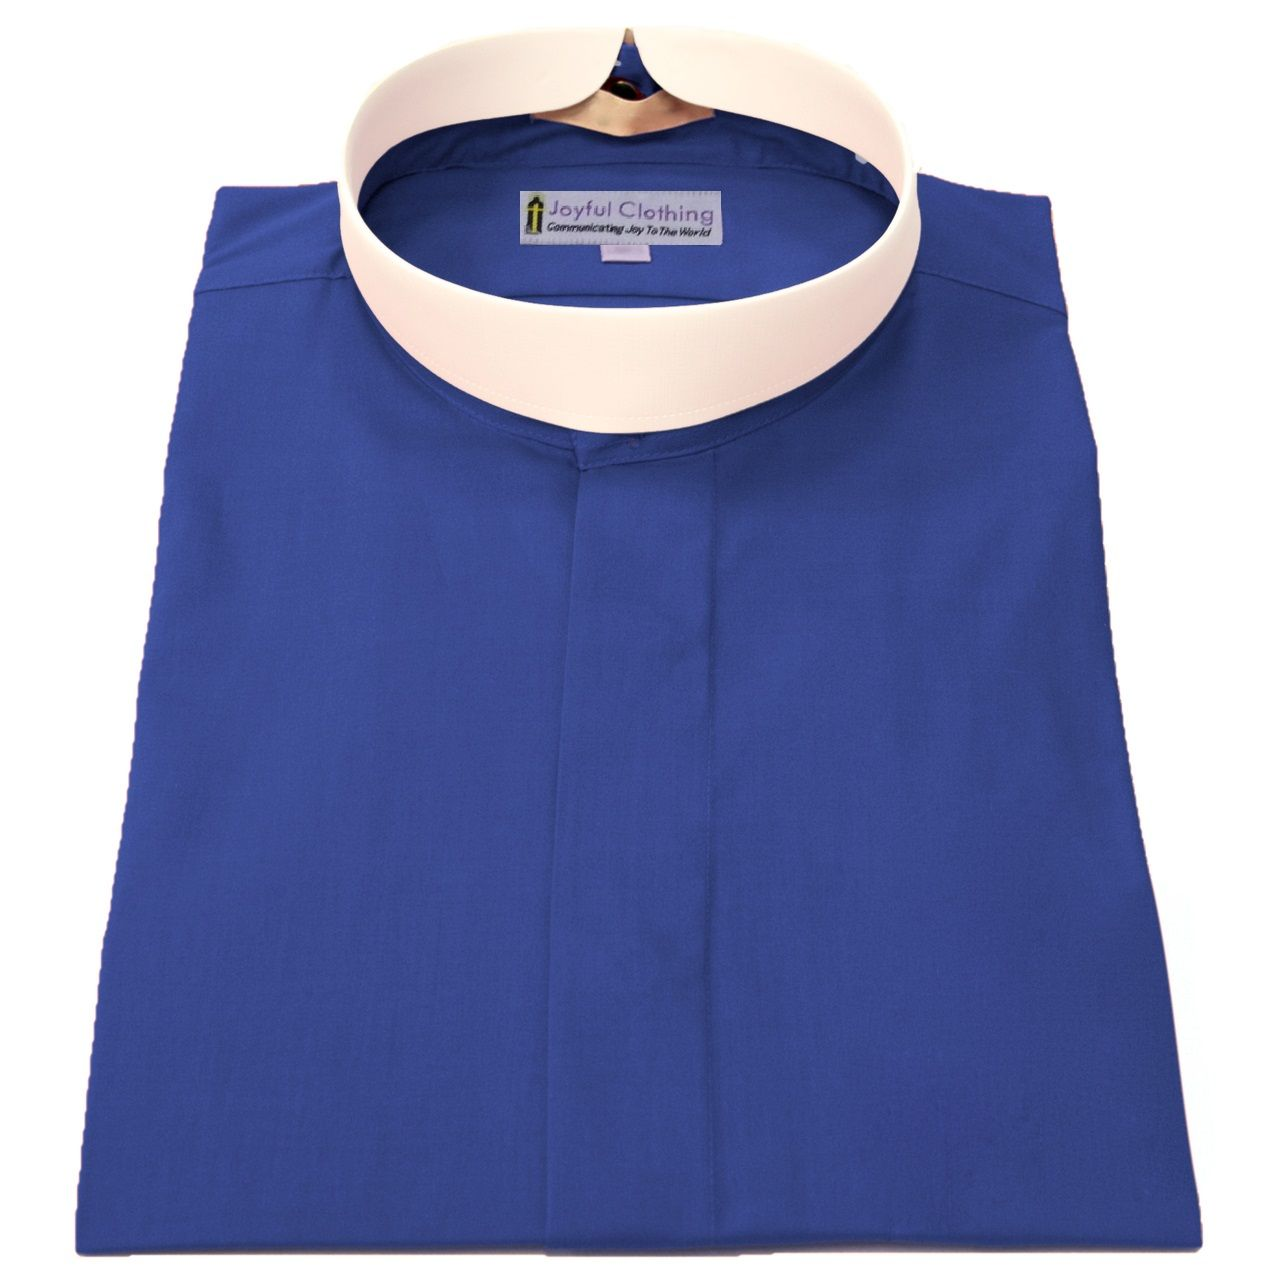 671. Women's Short-Sleeve (Banded) Full-Collar Clergy Shirt - Royal Blue